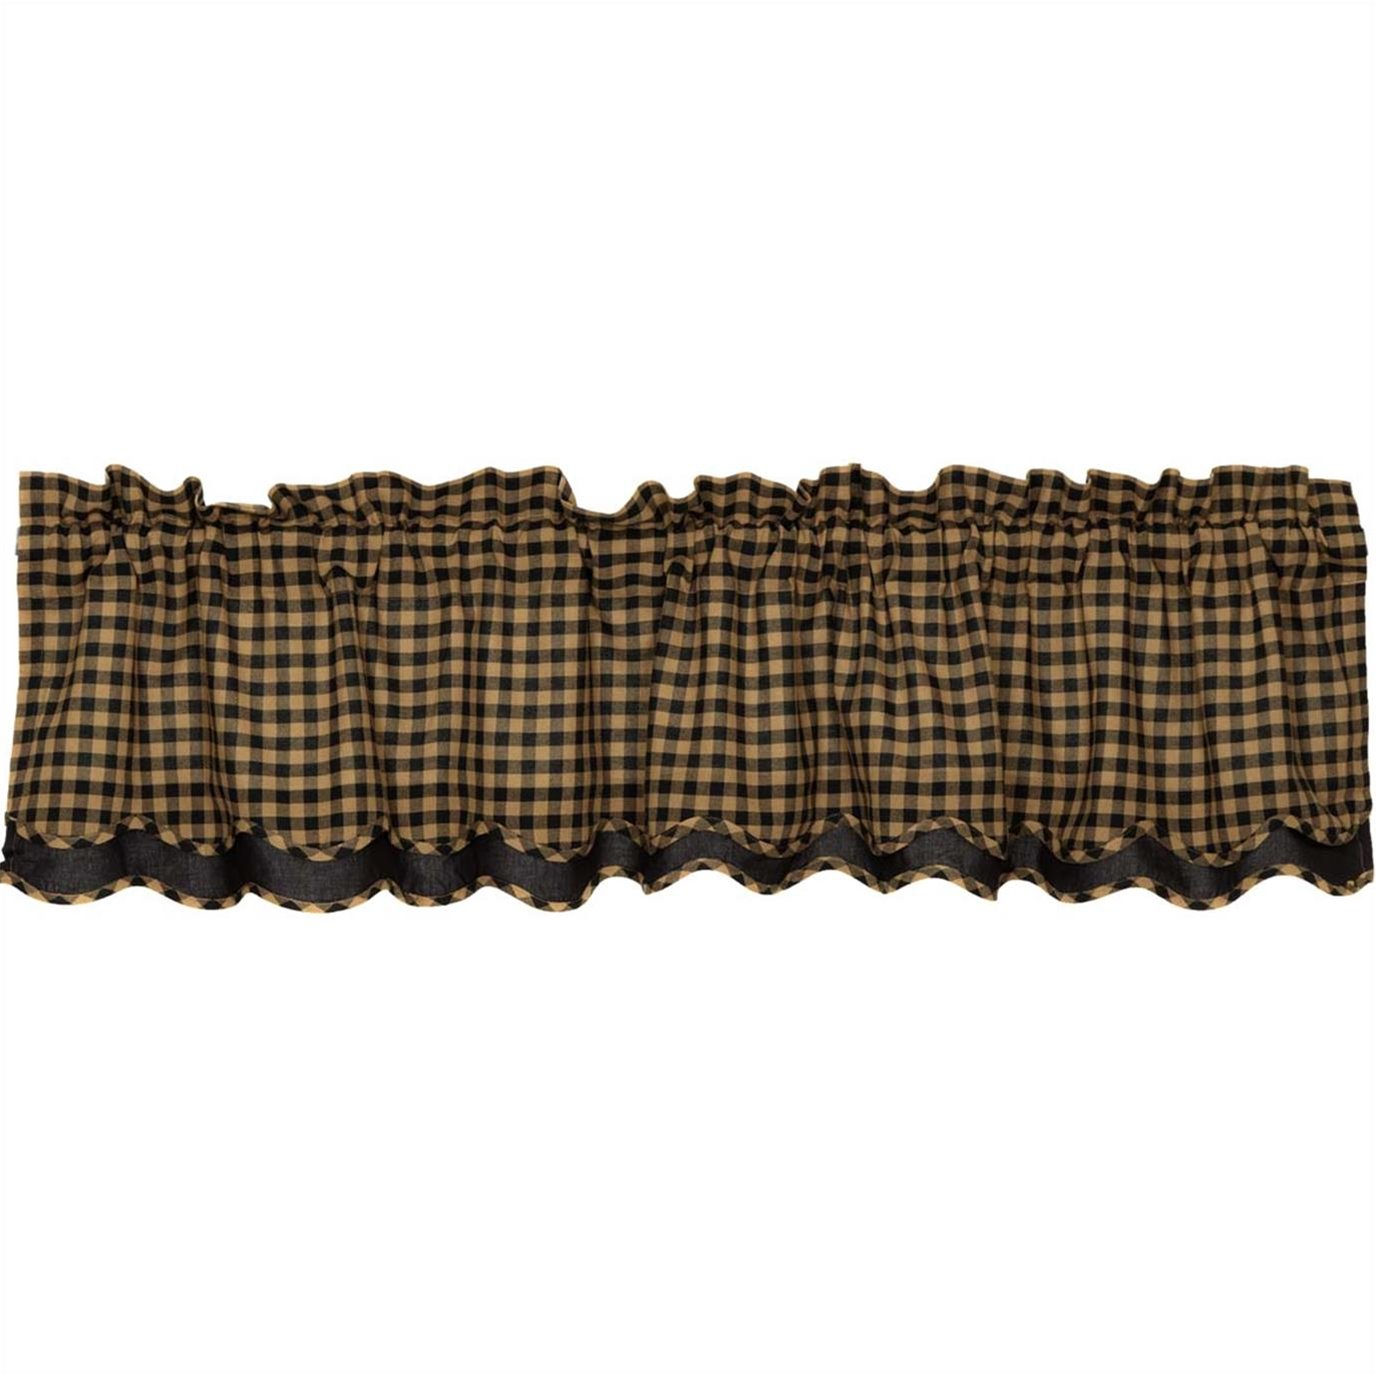 Black Check Scalloped Layered Valance 16x72